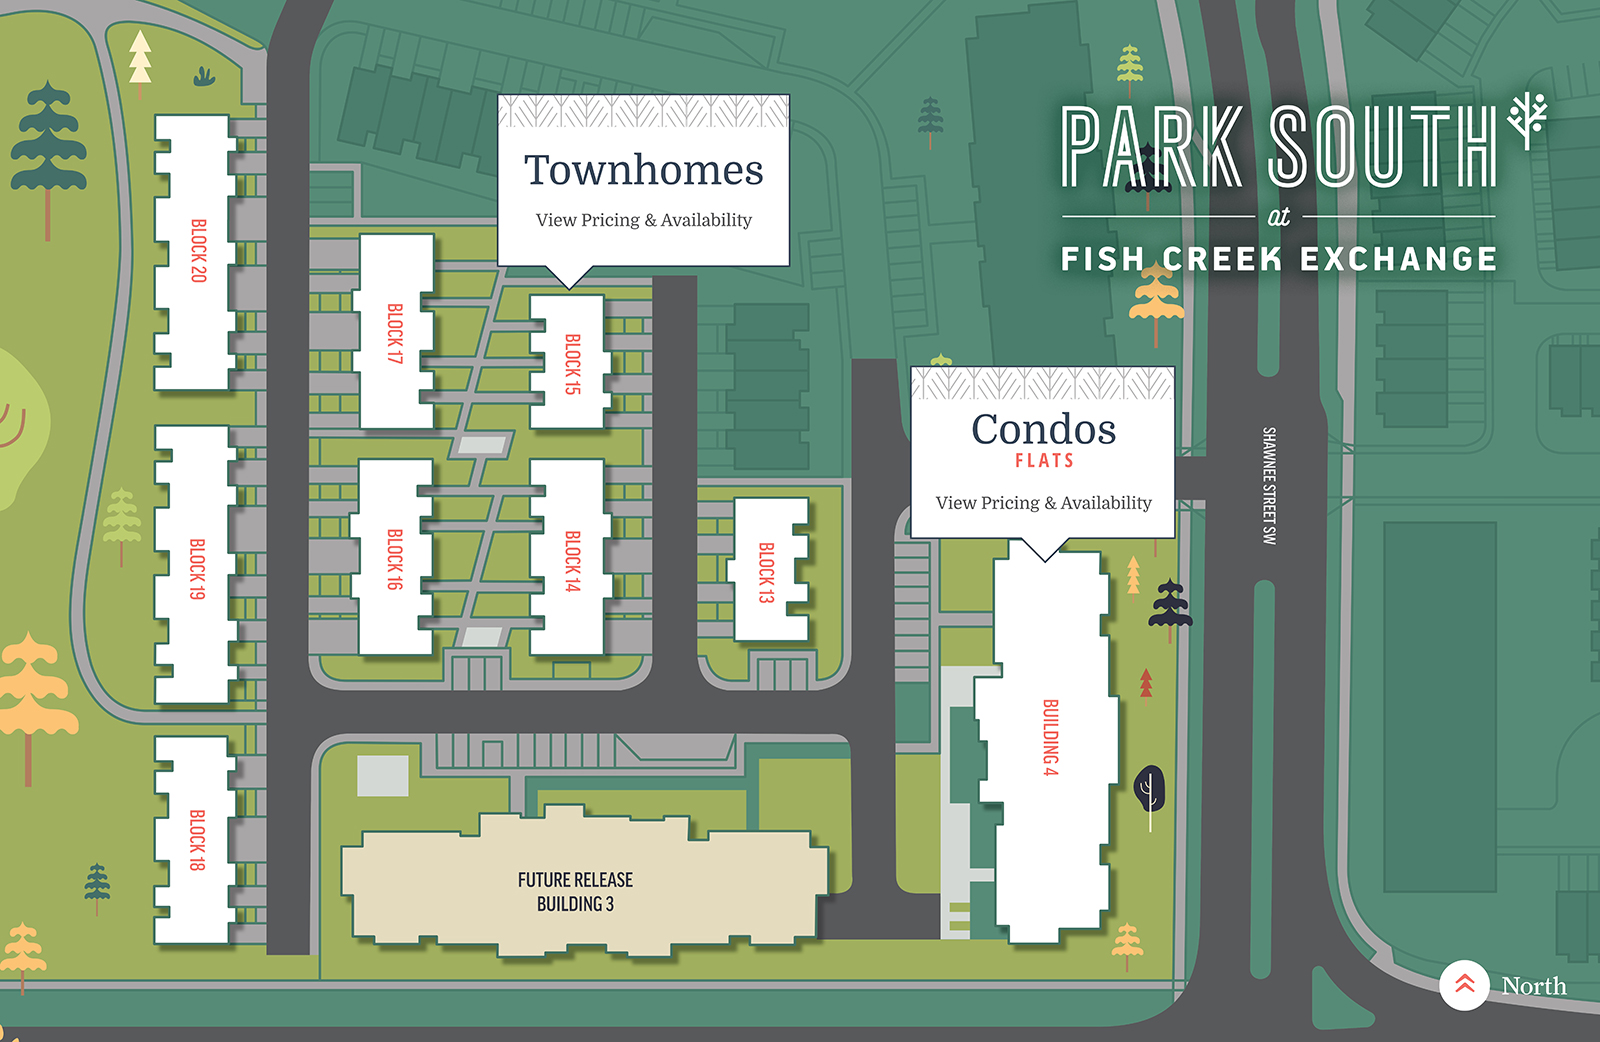 Map of Townhouses and Condos at Park South